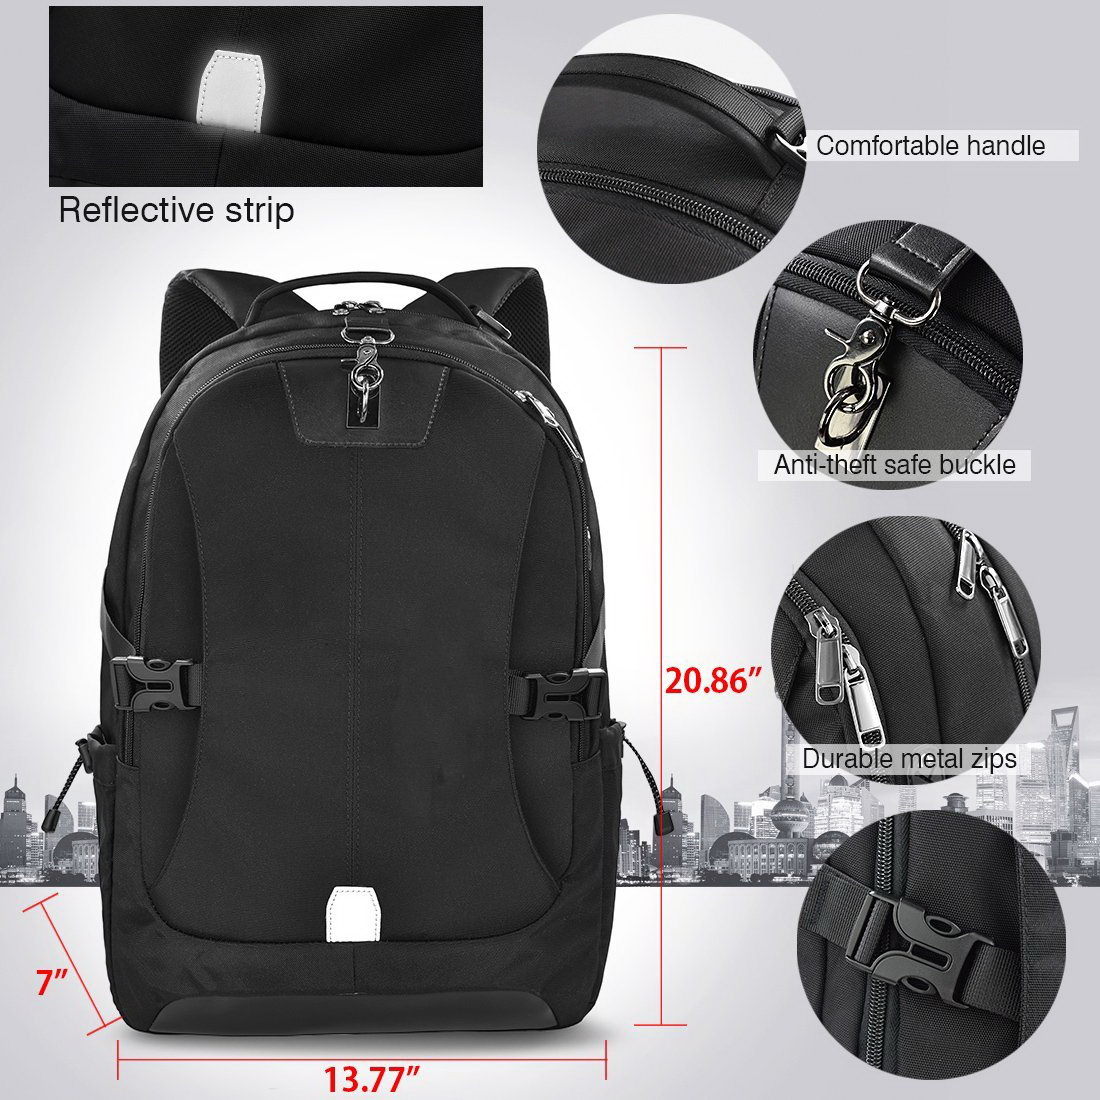 Custom new design waterproof reflective strip laptop backpack airflow back panel travel bag with USB charger